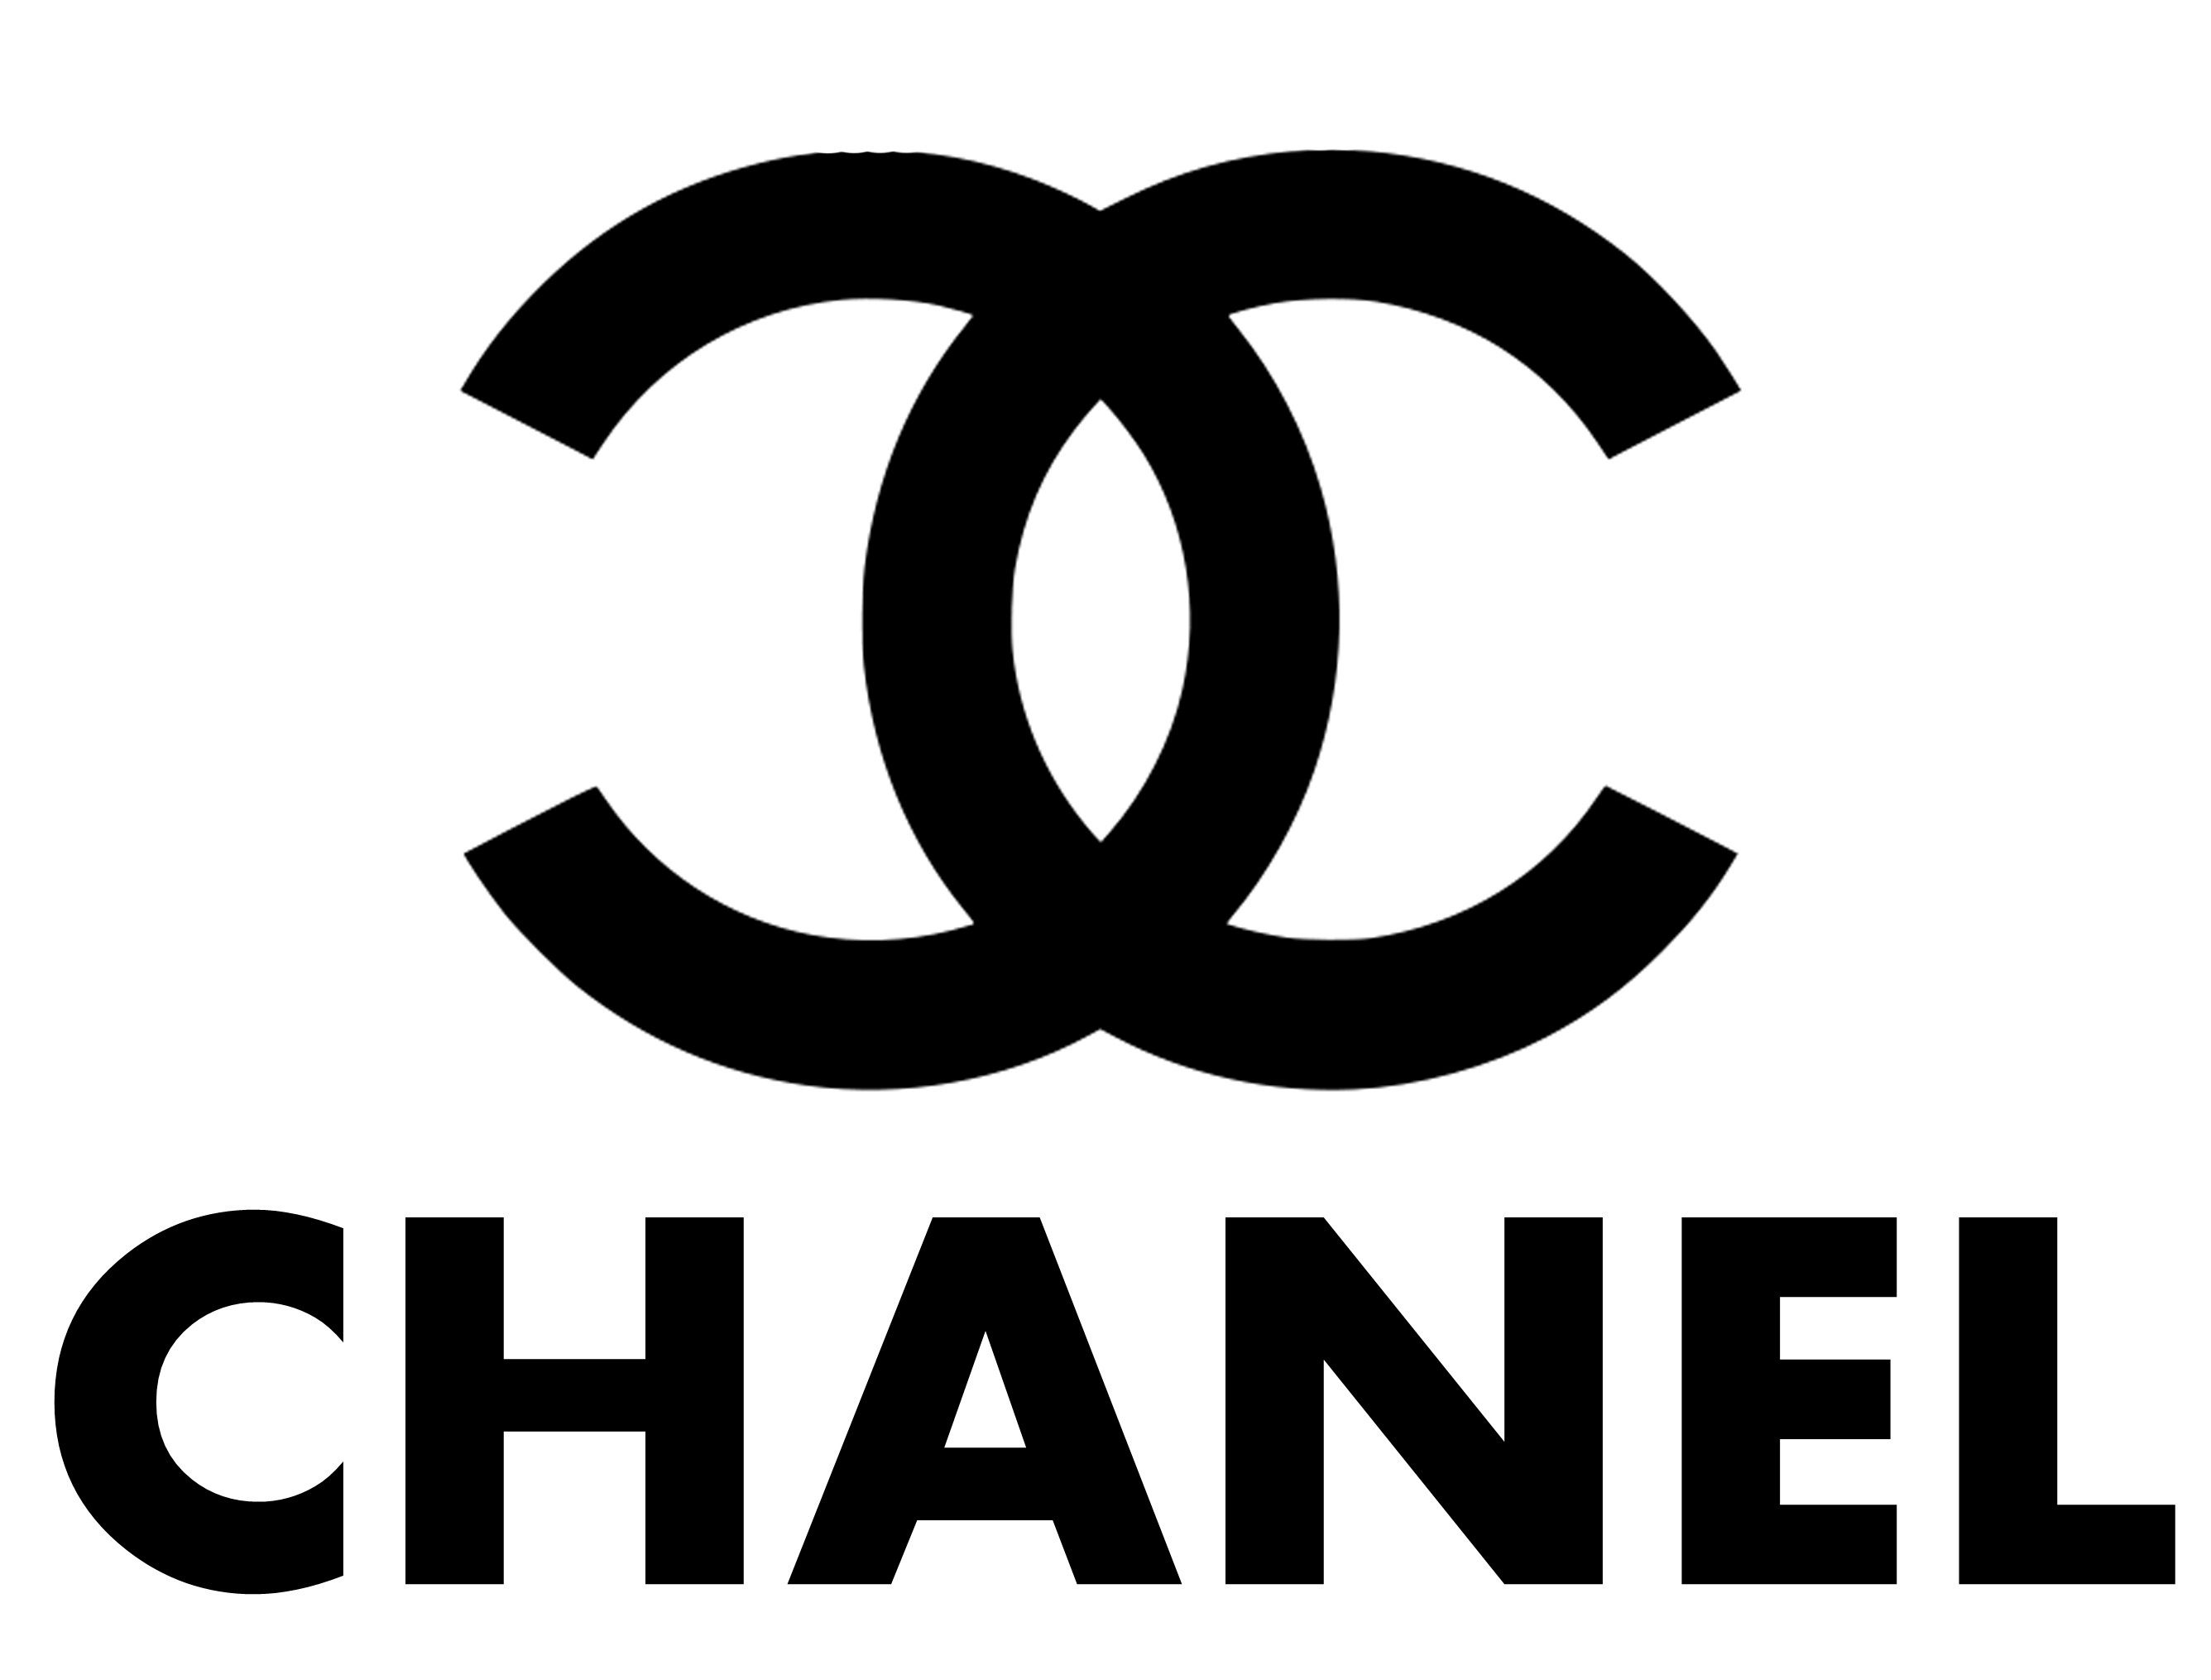 geometrically balanced word chanel could be a girl or woman s